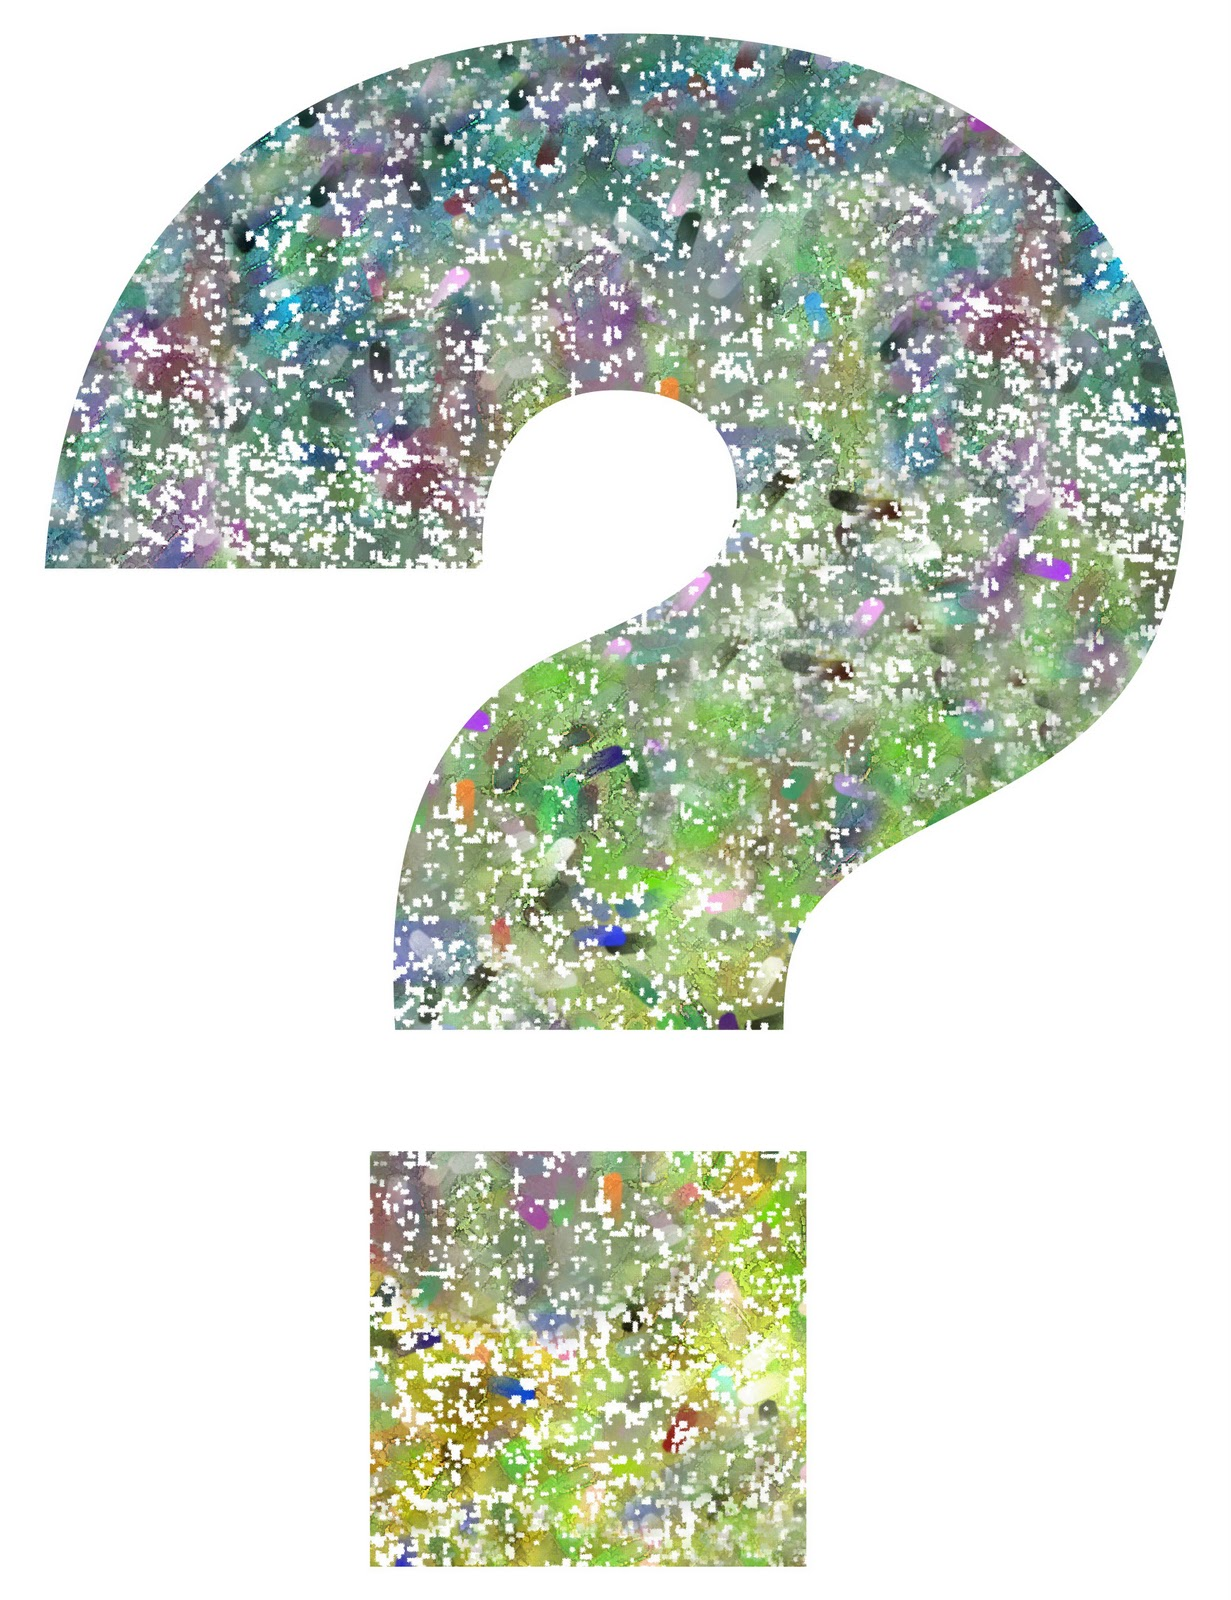 20 Question Mark Animated Clip Art Free Cliparts That You